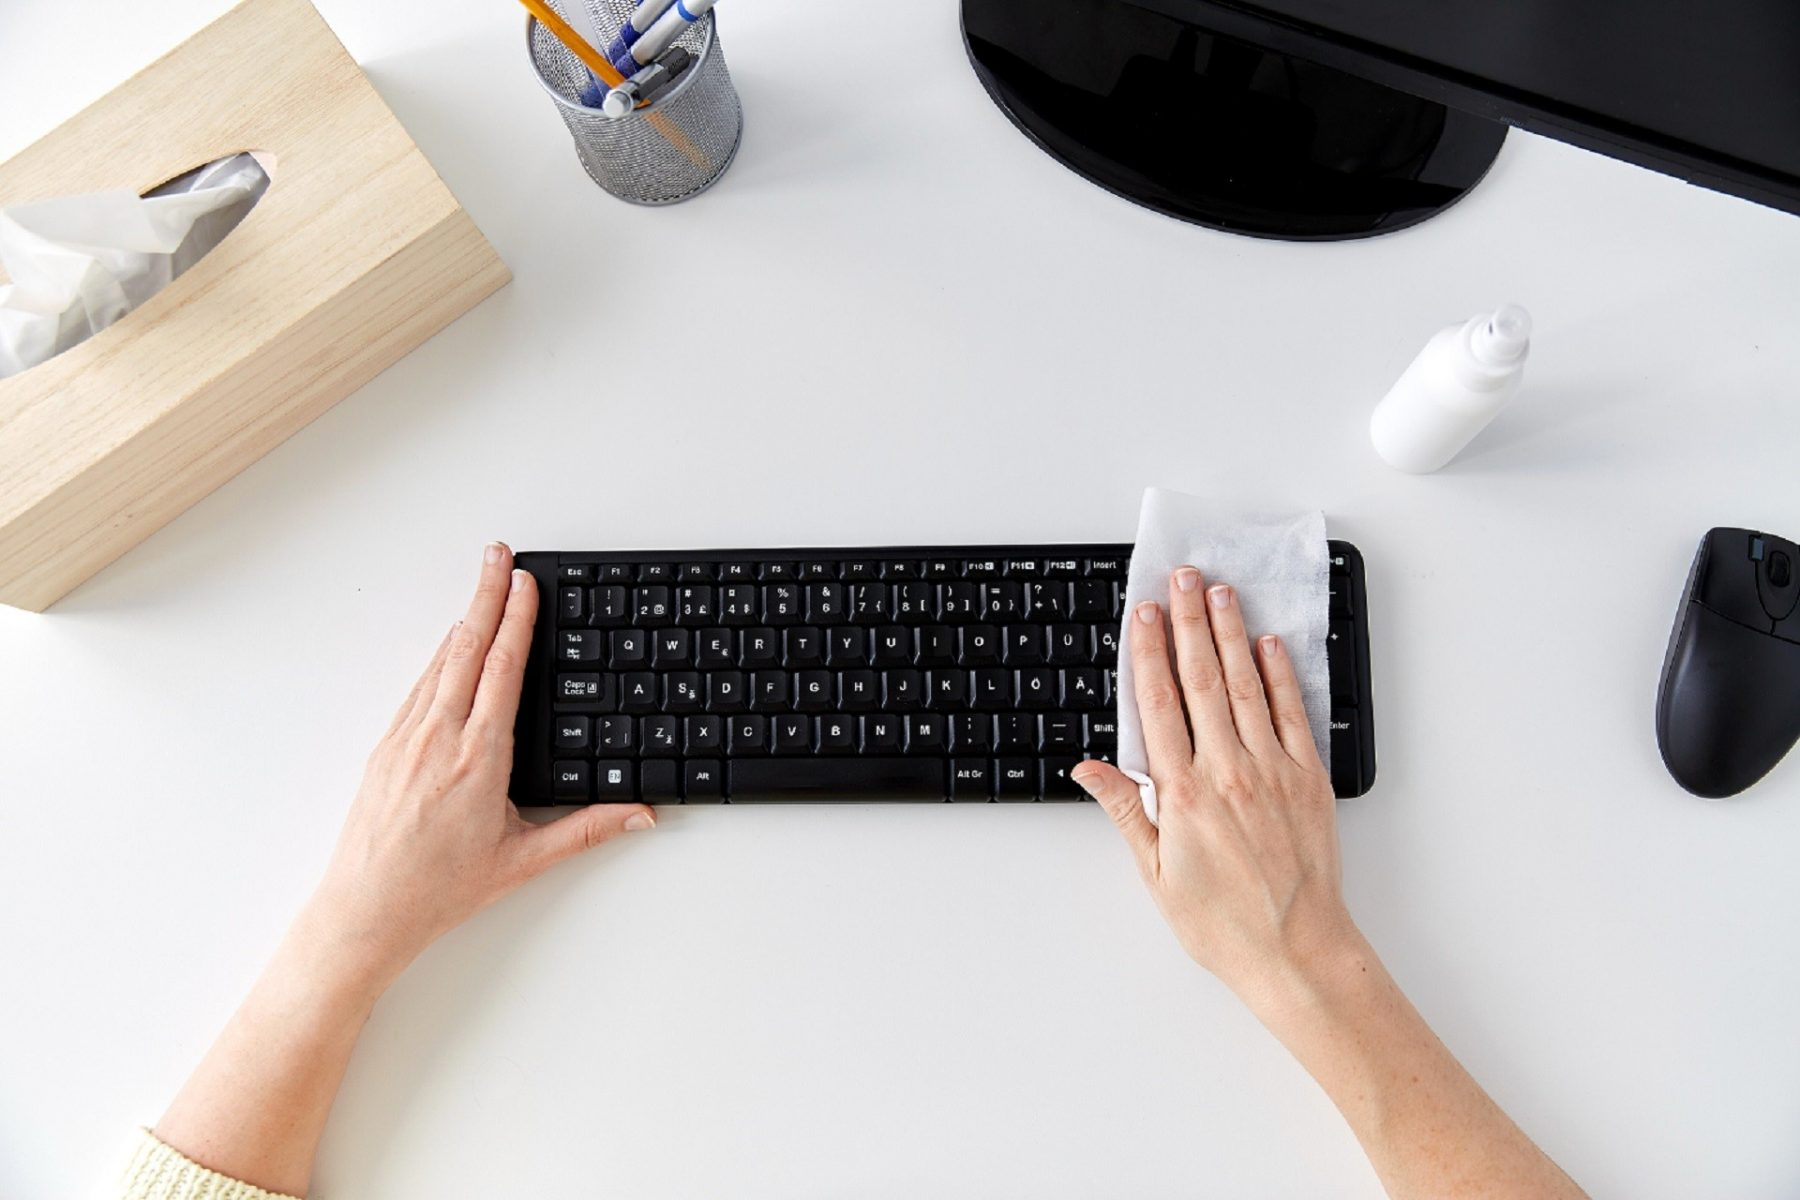 A person wiping down their keyboard with cleaning wipes